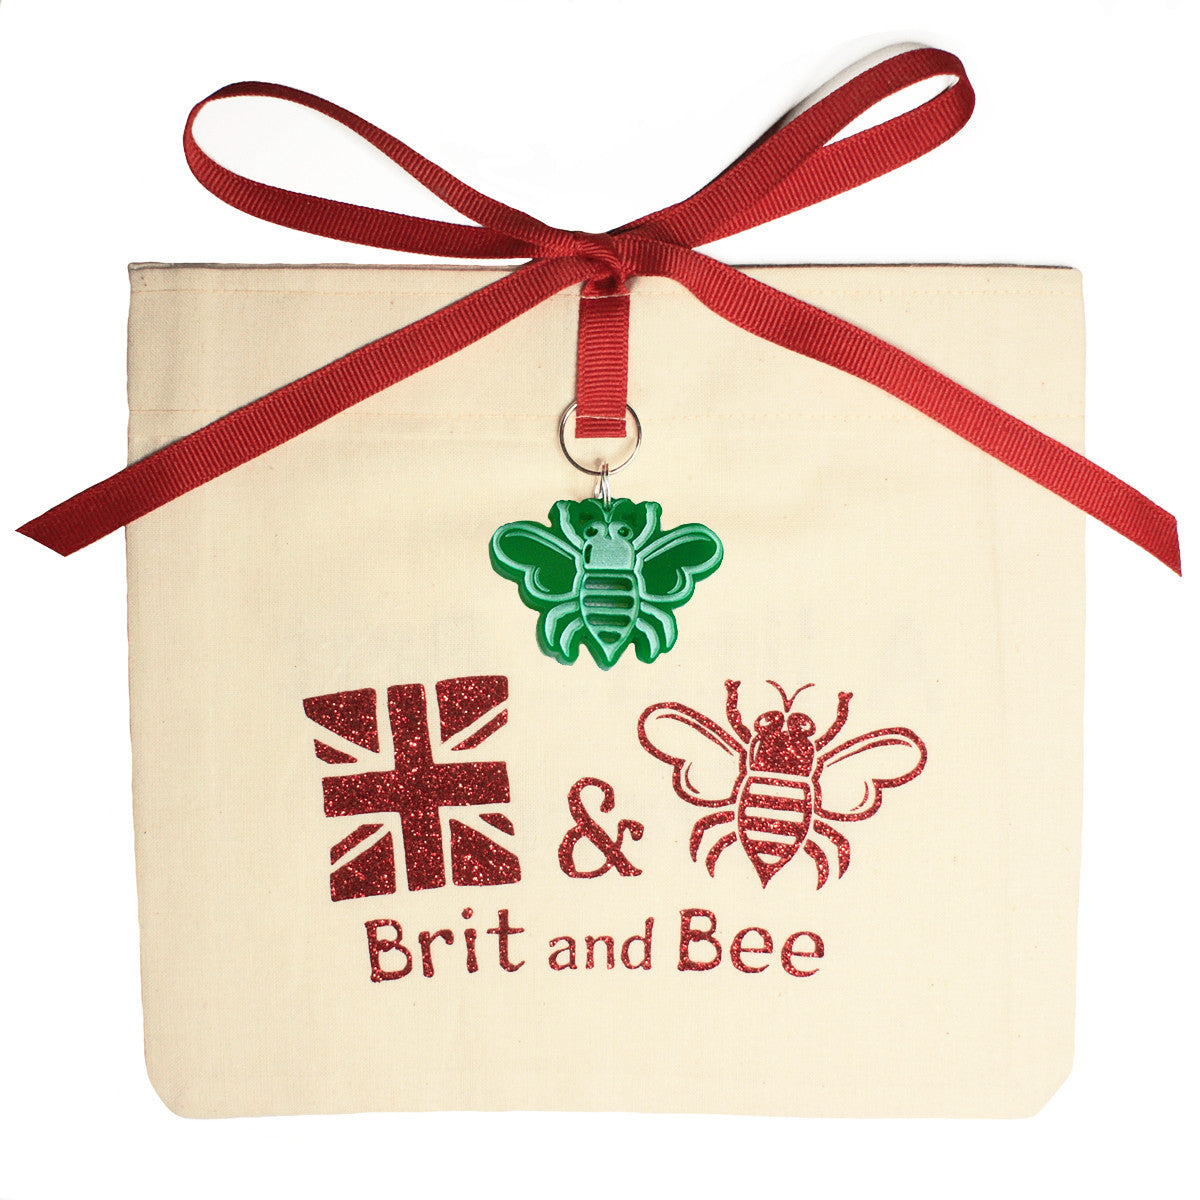 Brit and Bee Sorority Logo Ornament - Alpha Gamma Delta